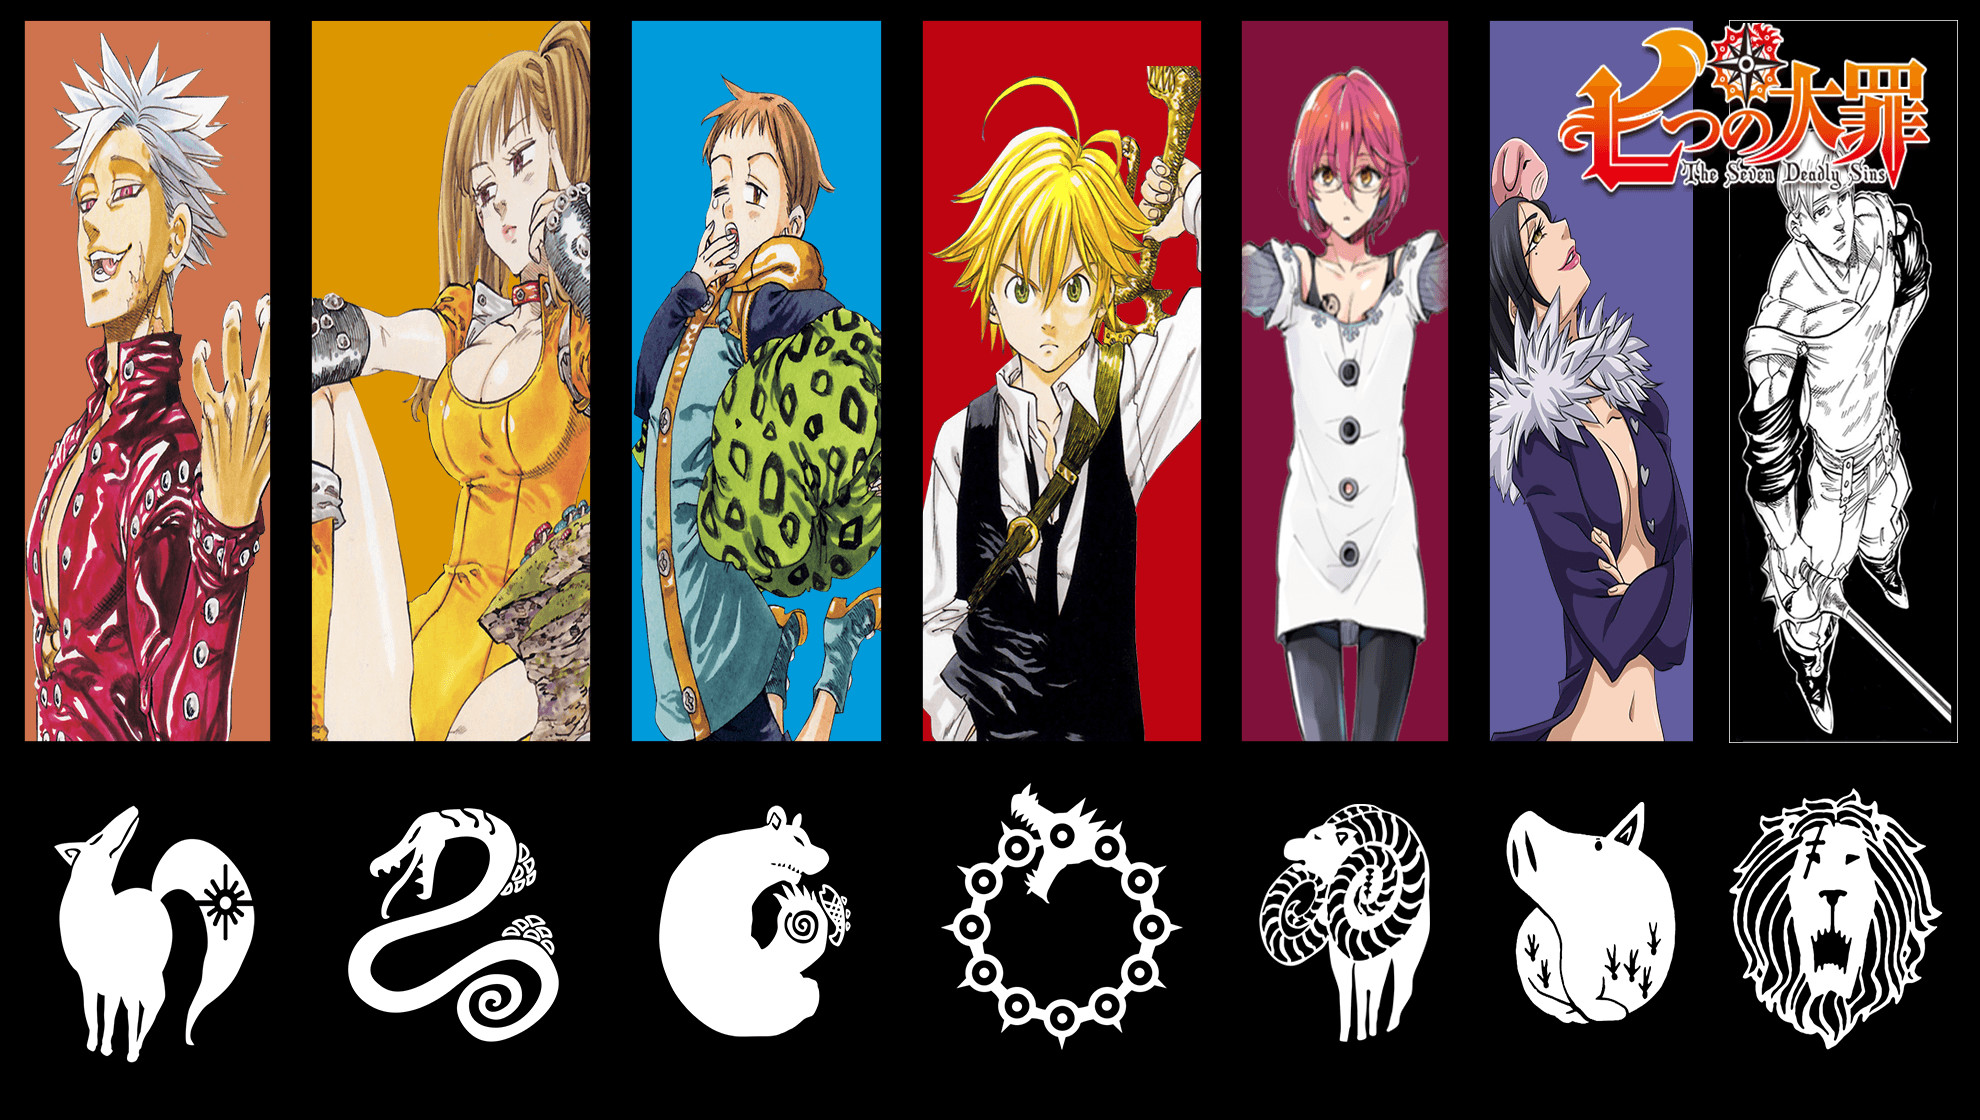 7 Deadly Sins Wallpaper 75 Pictures